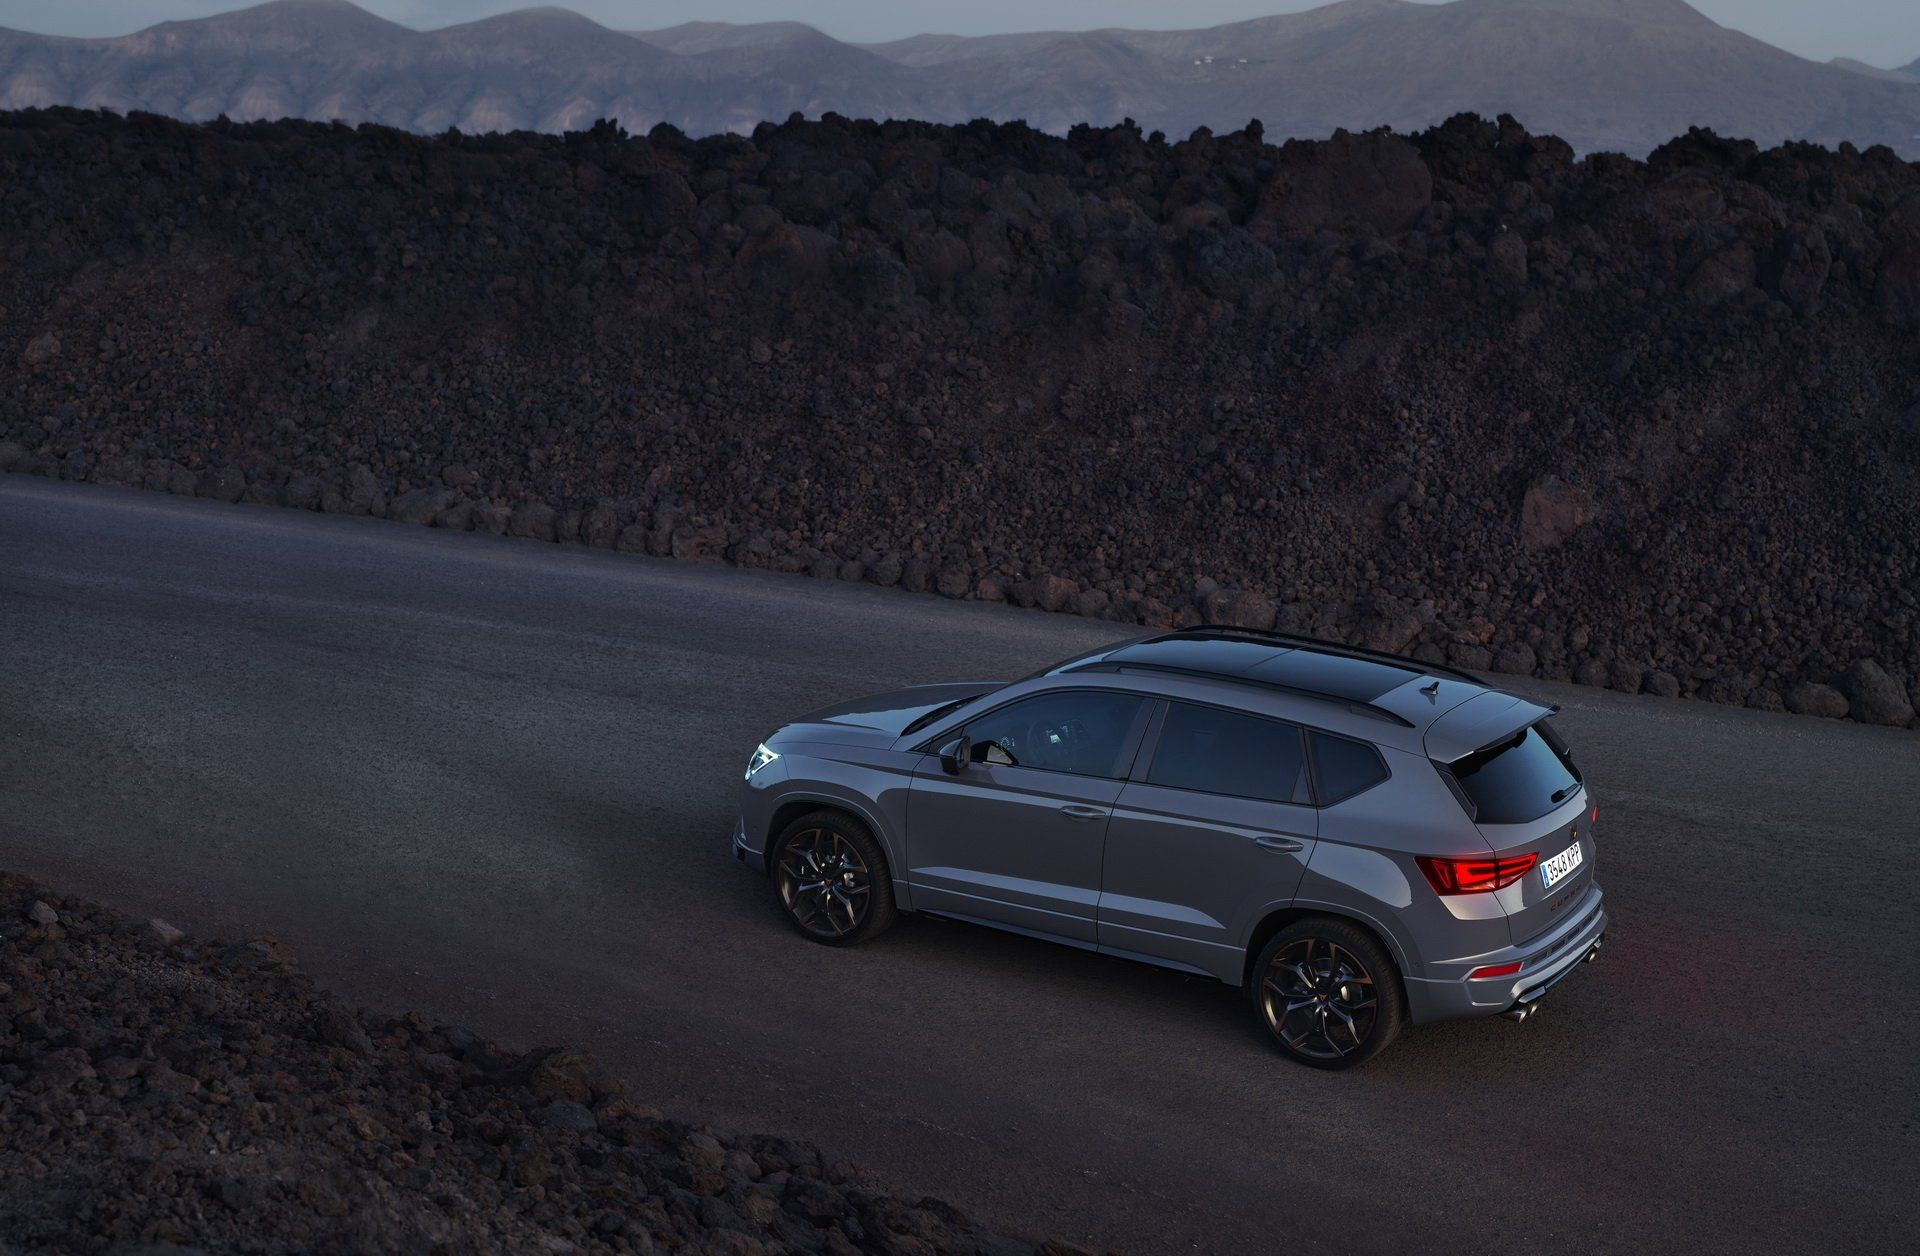 Cupra-Ateca-Limited-Edition-18